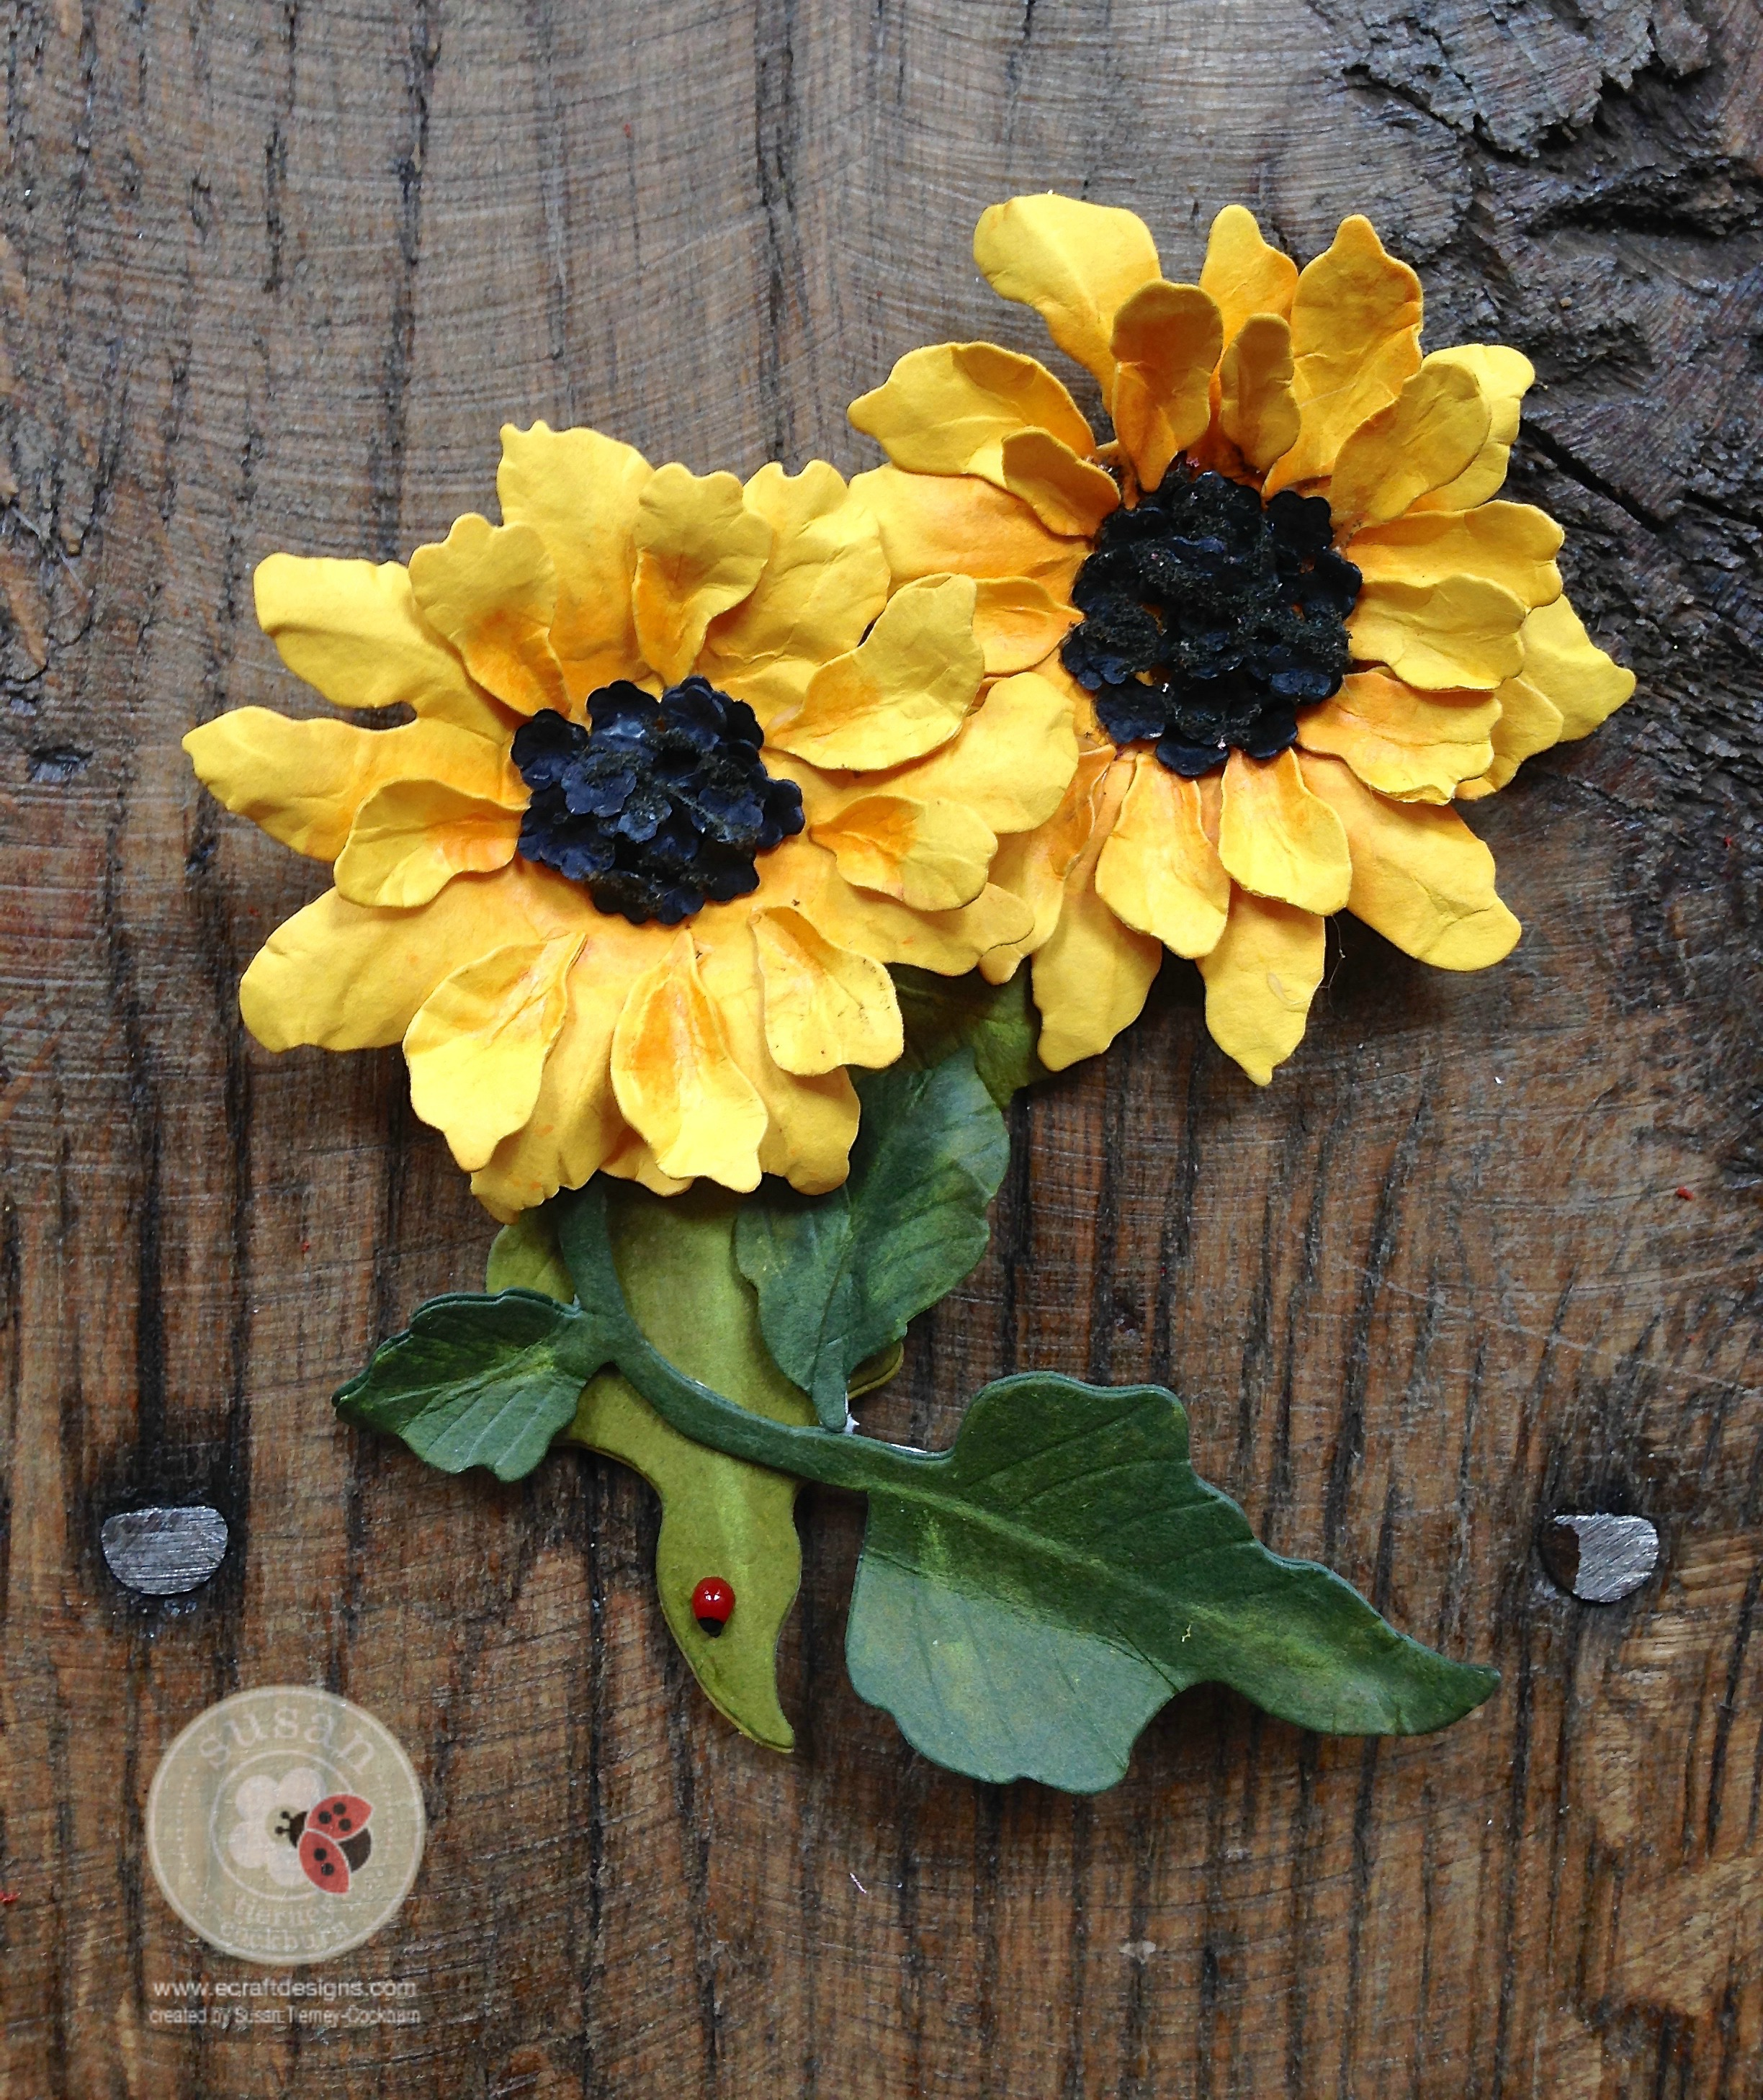 New video tutorial garden notes sunflower for Garden designs by elizabeth